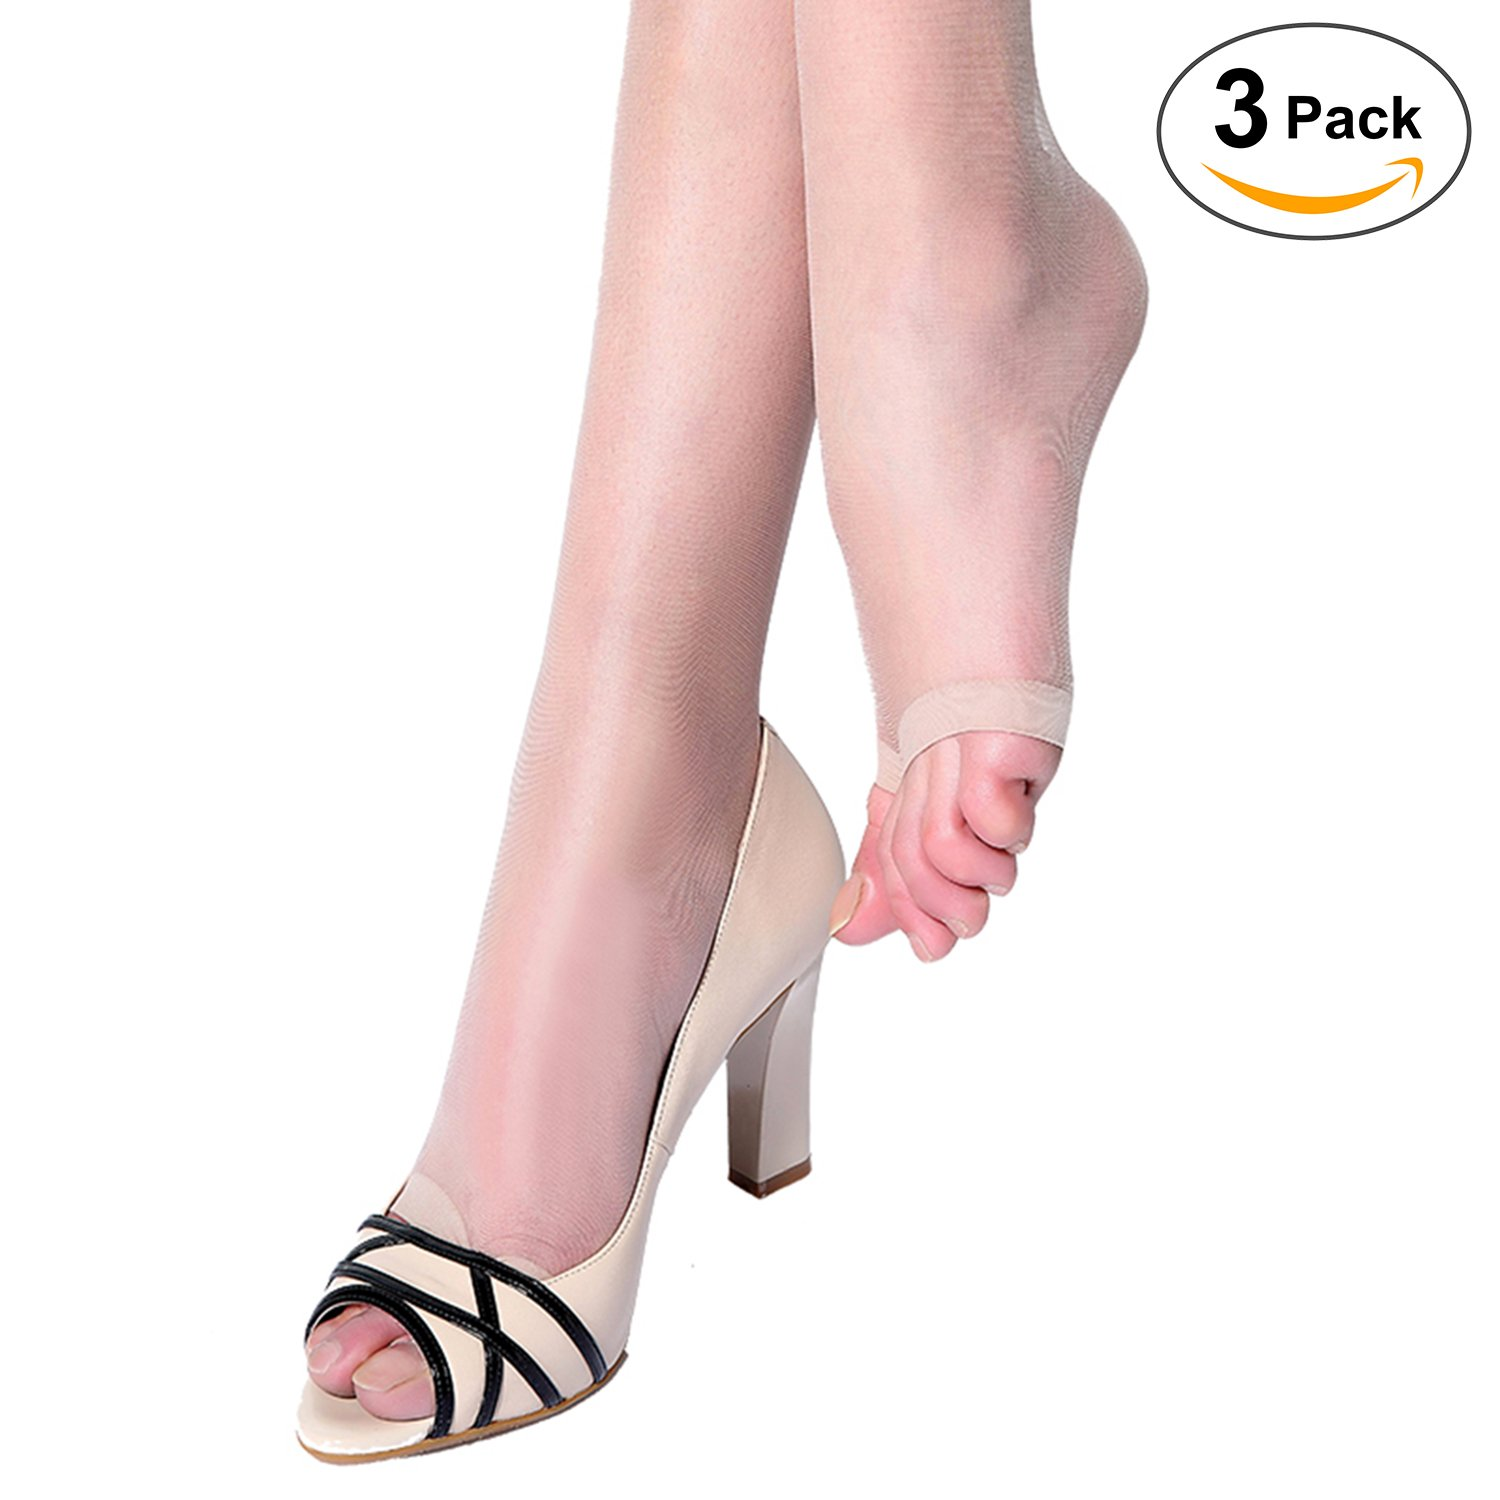 Pack pantyhose affordable toeless